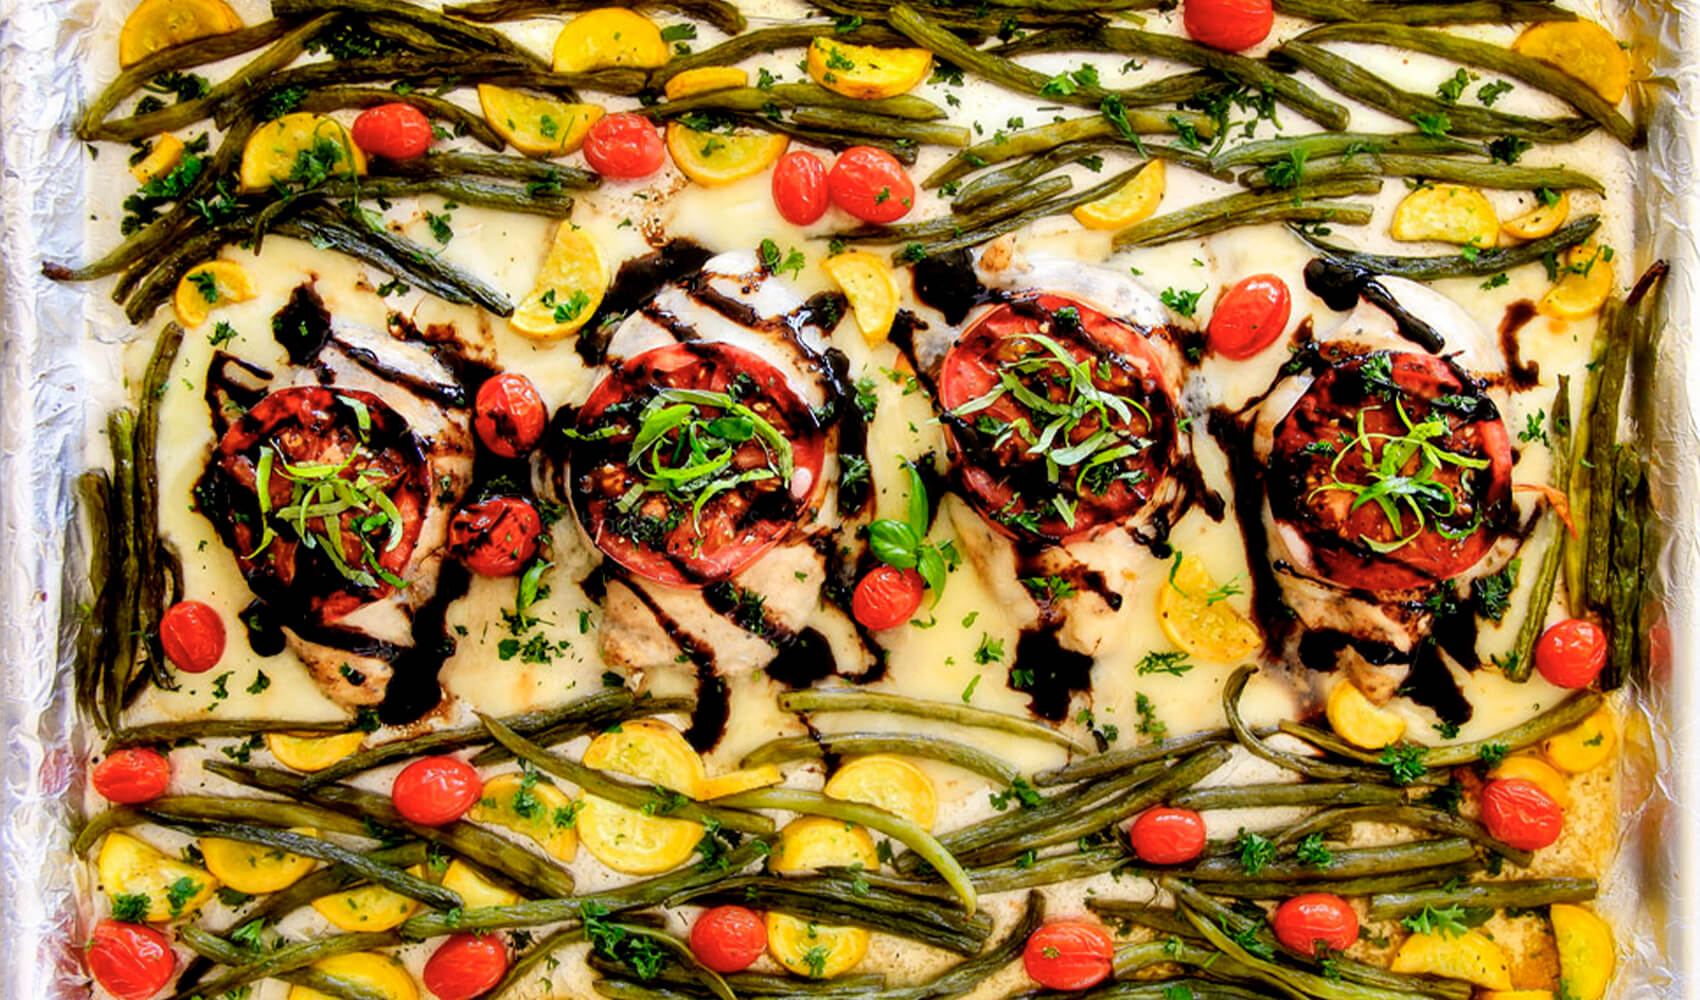 Sheet Pan Caprese Balsamic Chicken and Veggies